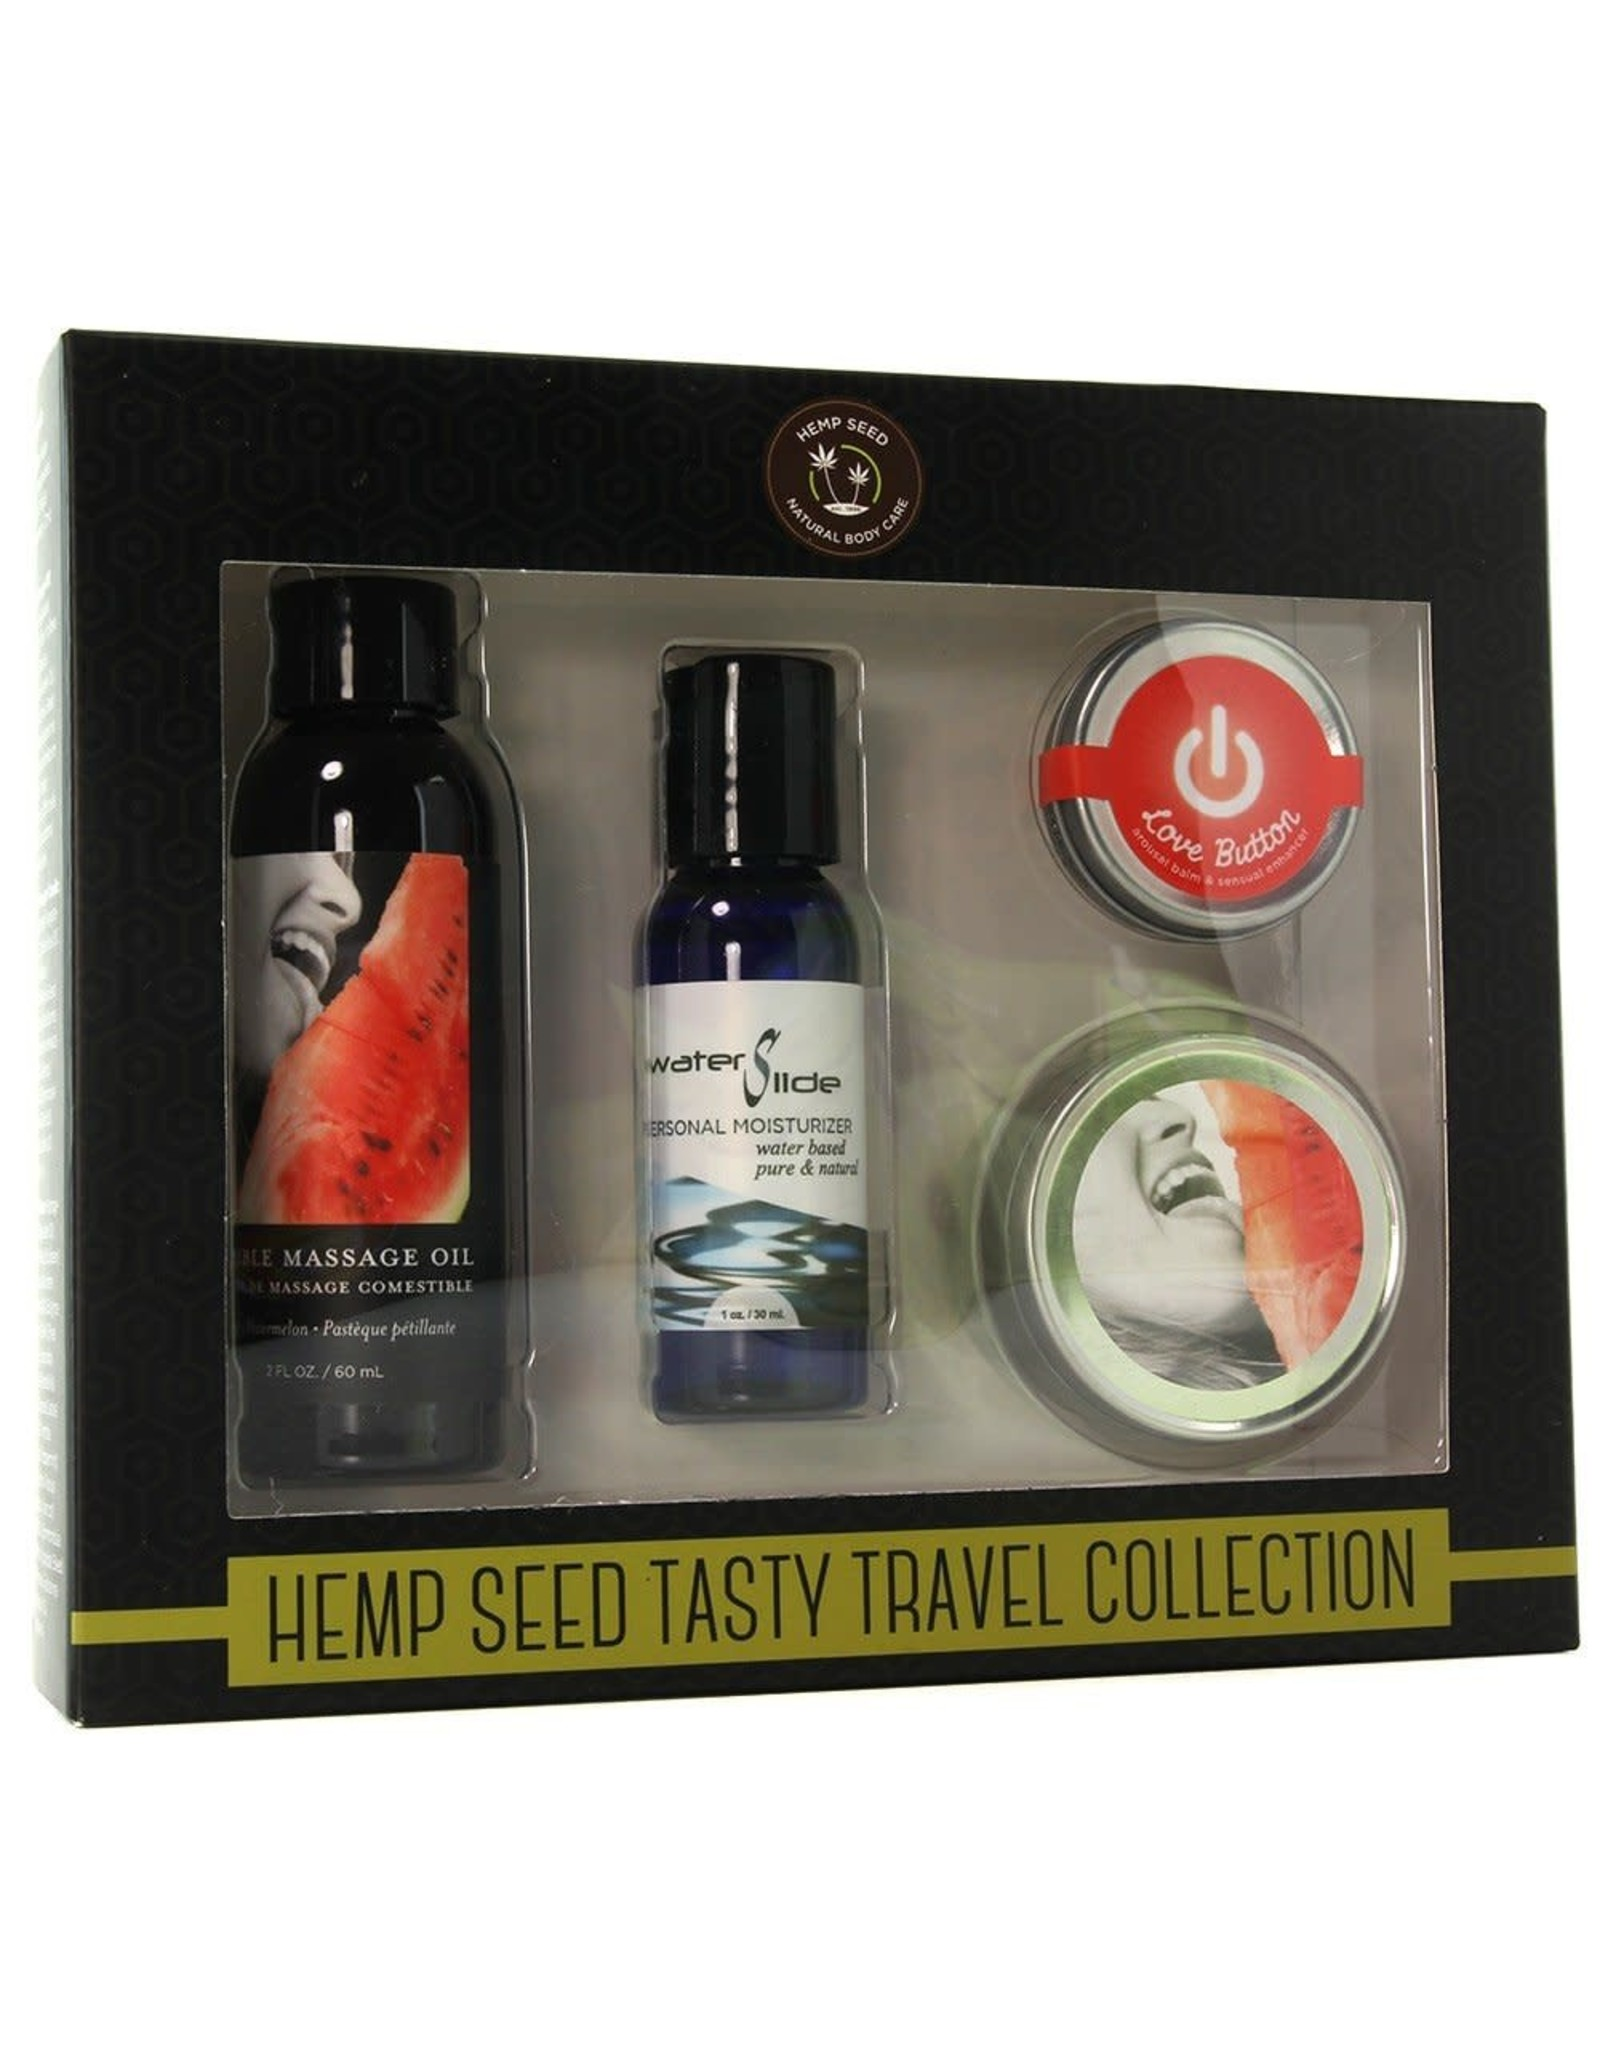 EARTHLY BODY EARTHLY BODY - HEMP SEED TASTY TRAVEL COLLECTION - WATERMELON